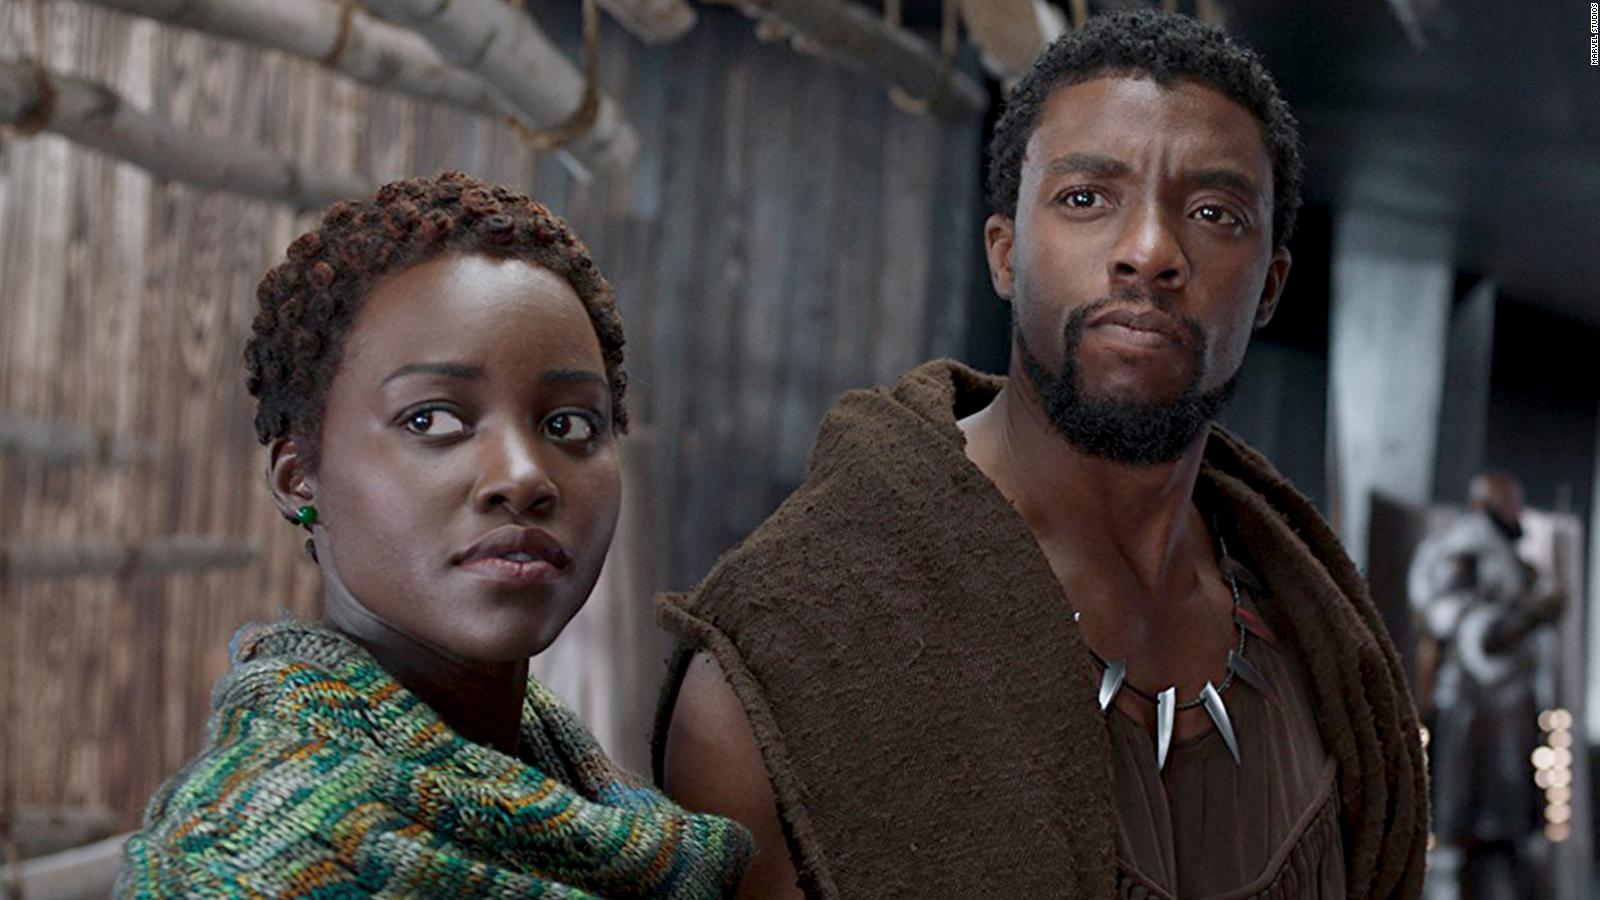 Rezultat iskanja slik za black panther movie pictures